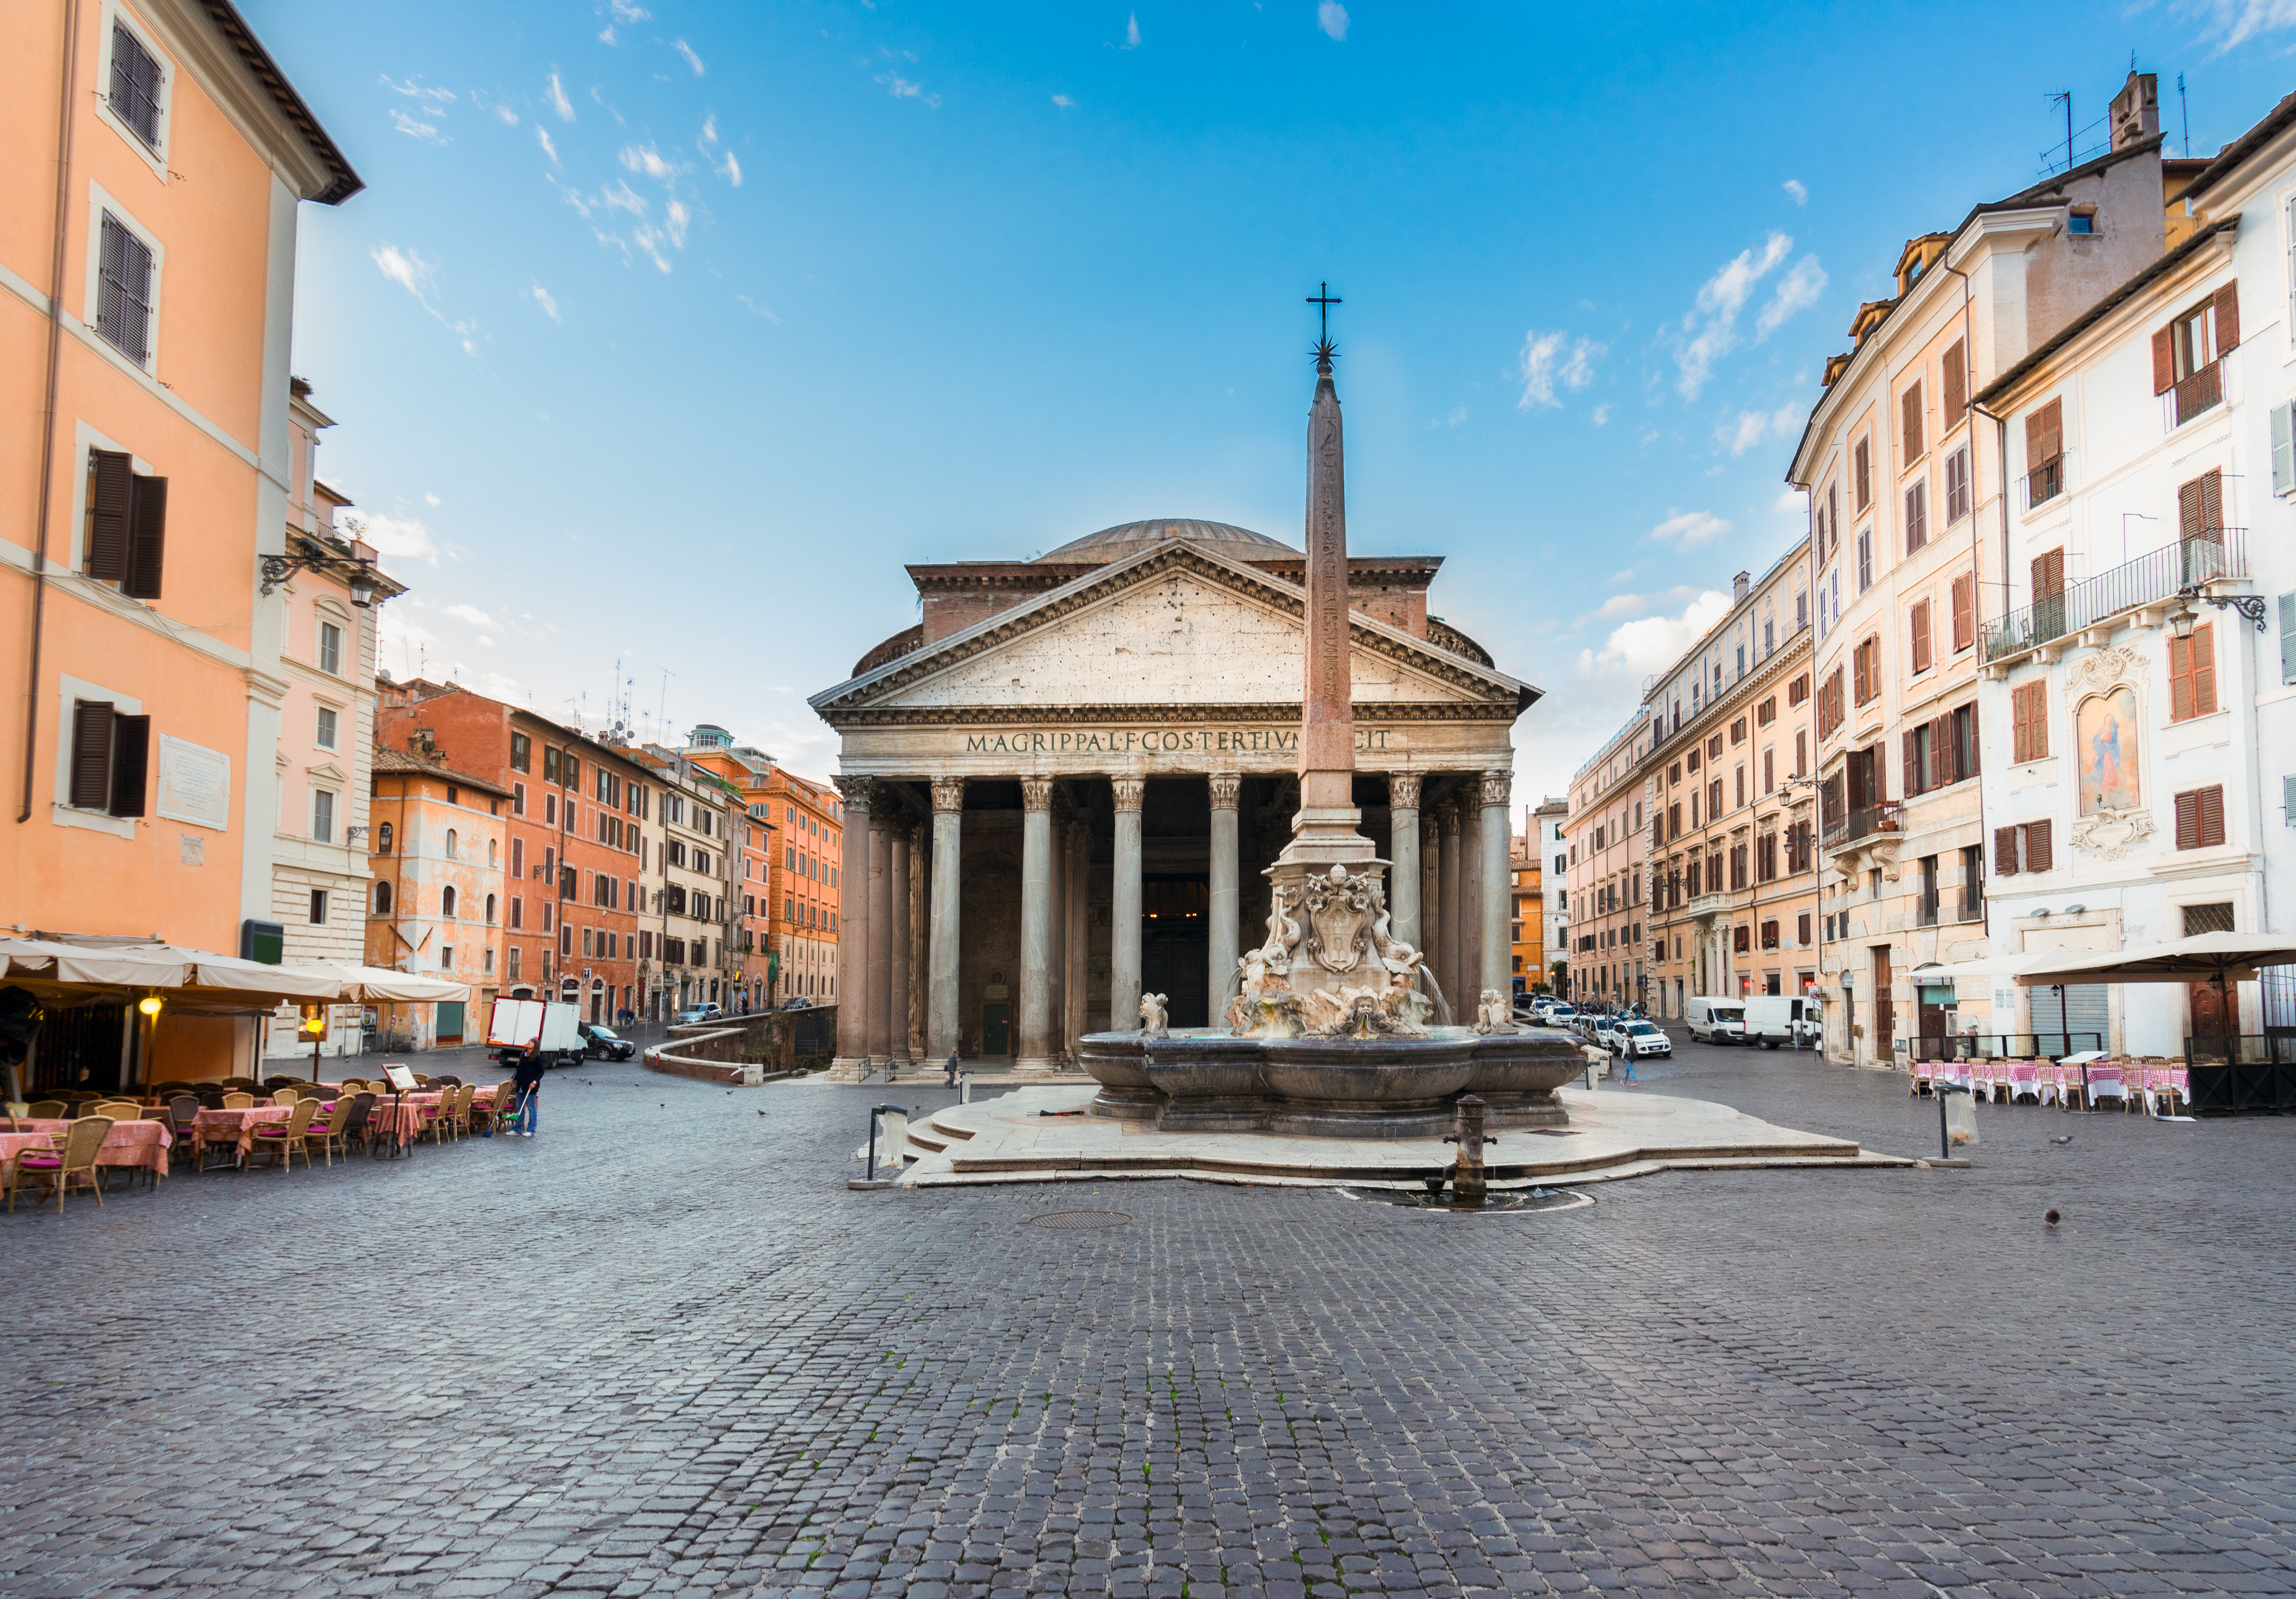 The imposing Pantheon in Rome, once a Roman temple dedicated to all gods, and now converted to a church, is the best preserved of all Ancient Roman monuments.